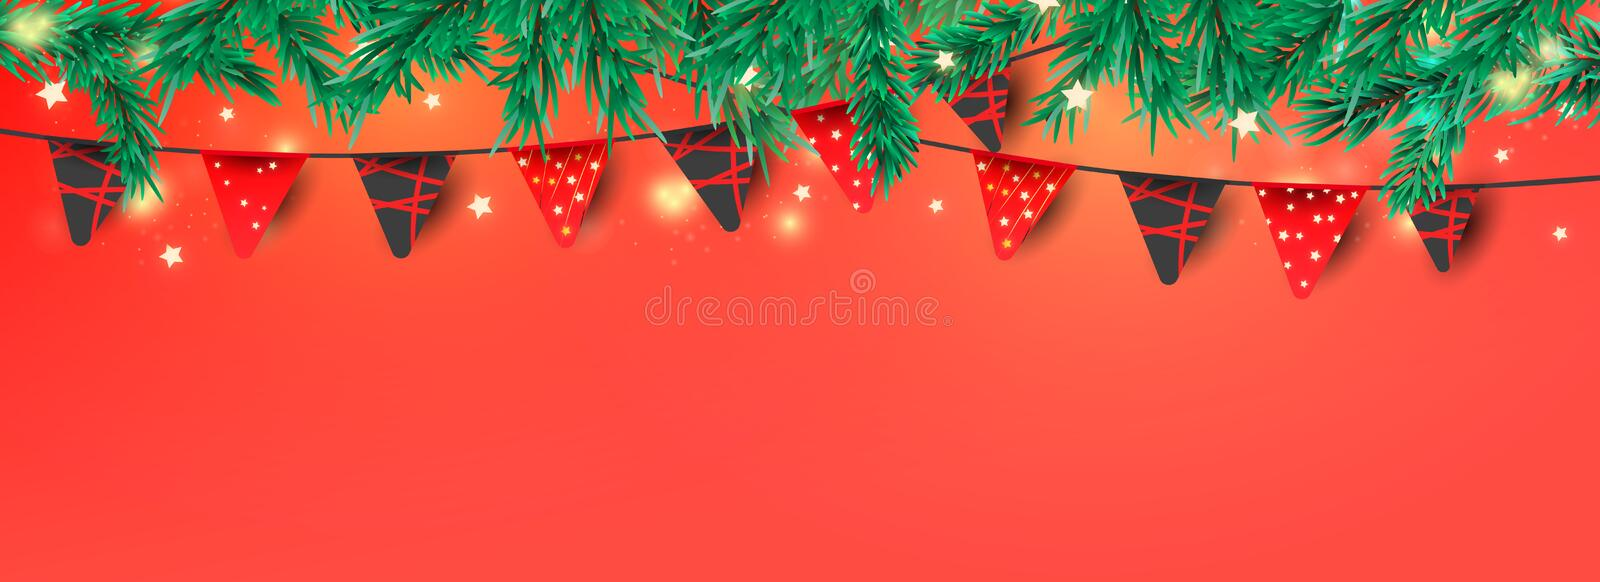 Christmas or New Year decorative elements for banner decoration. Red garland flags, glitter confetti and pine branches with place stock image